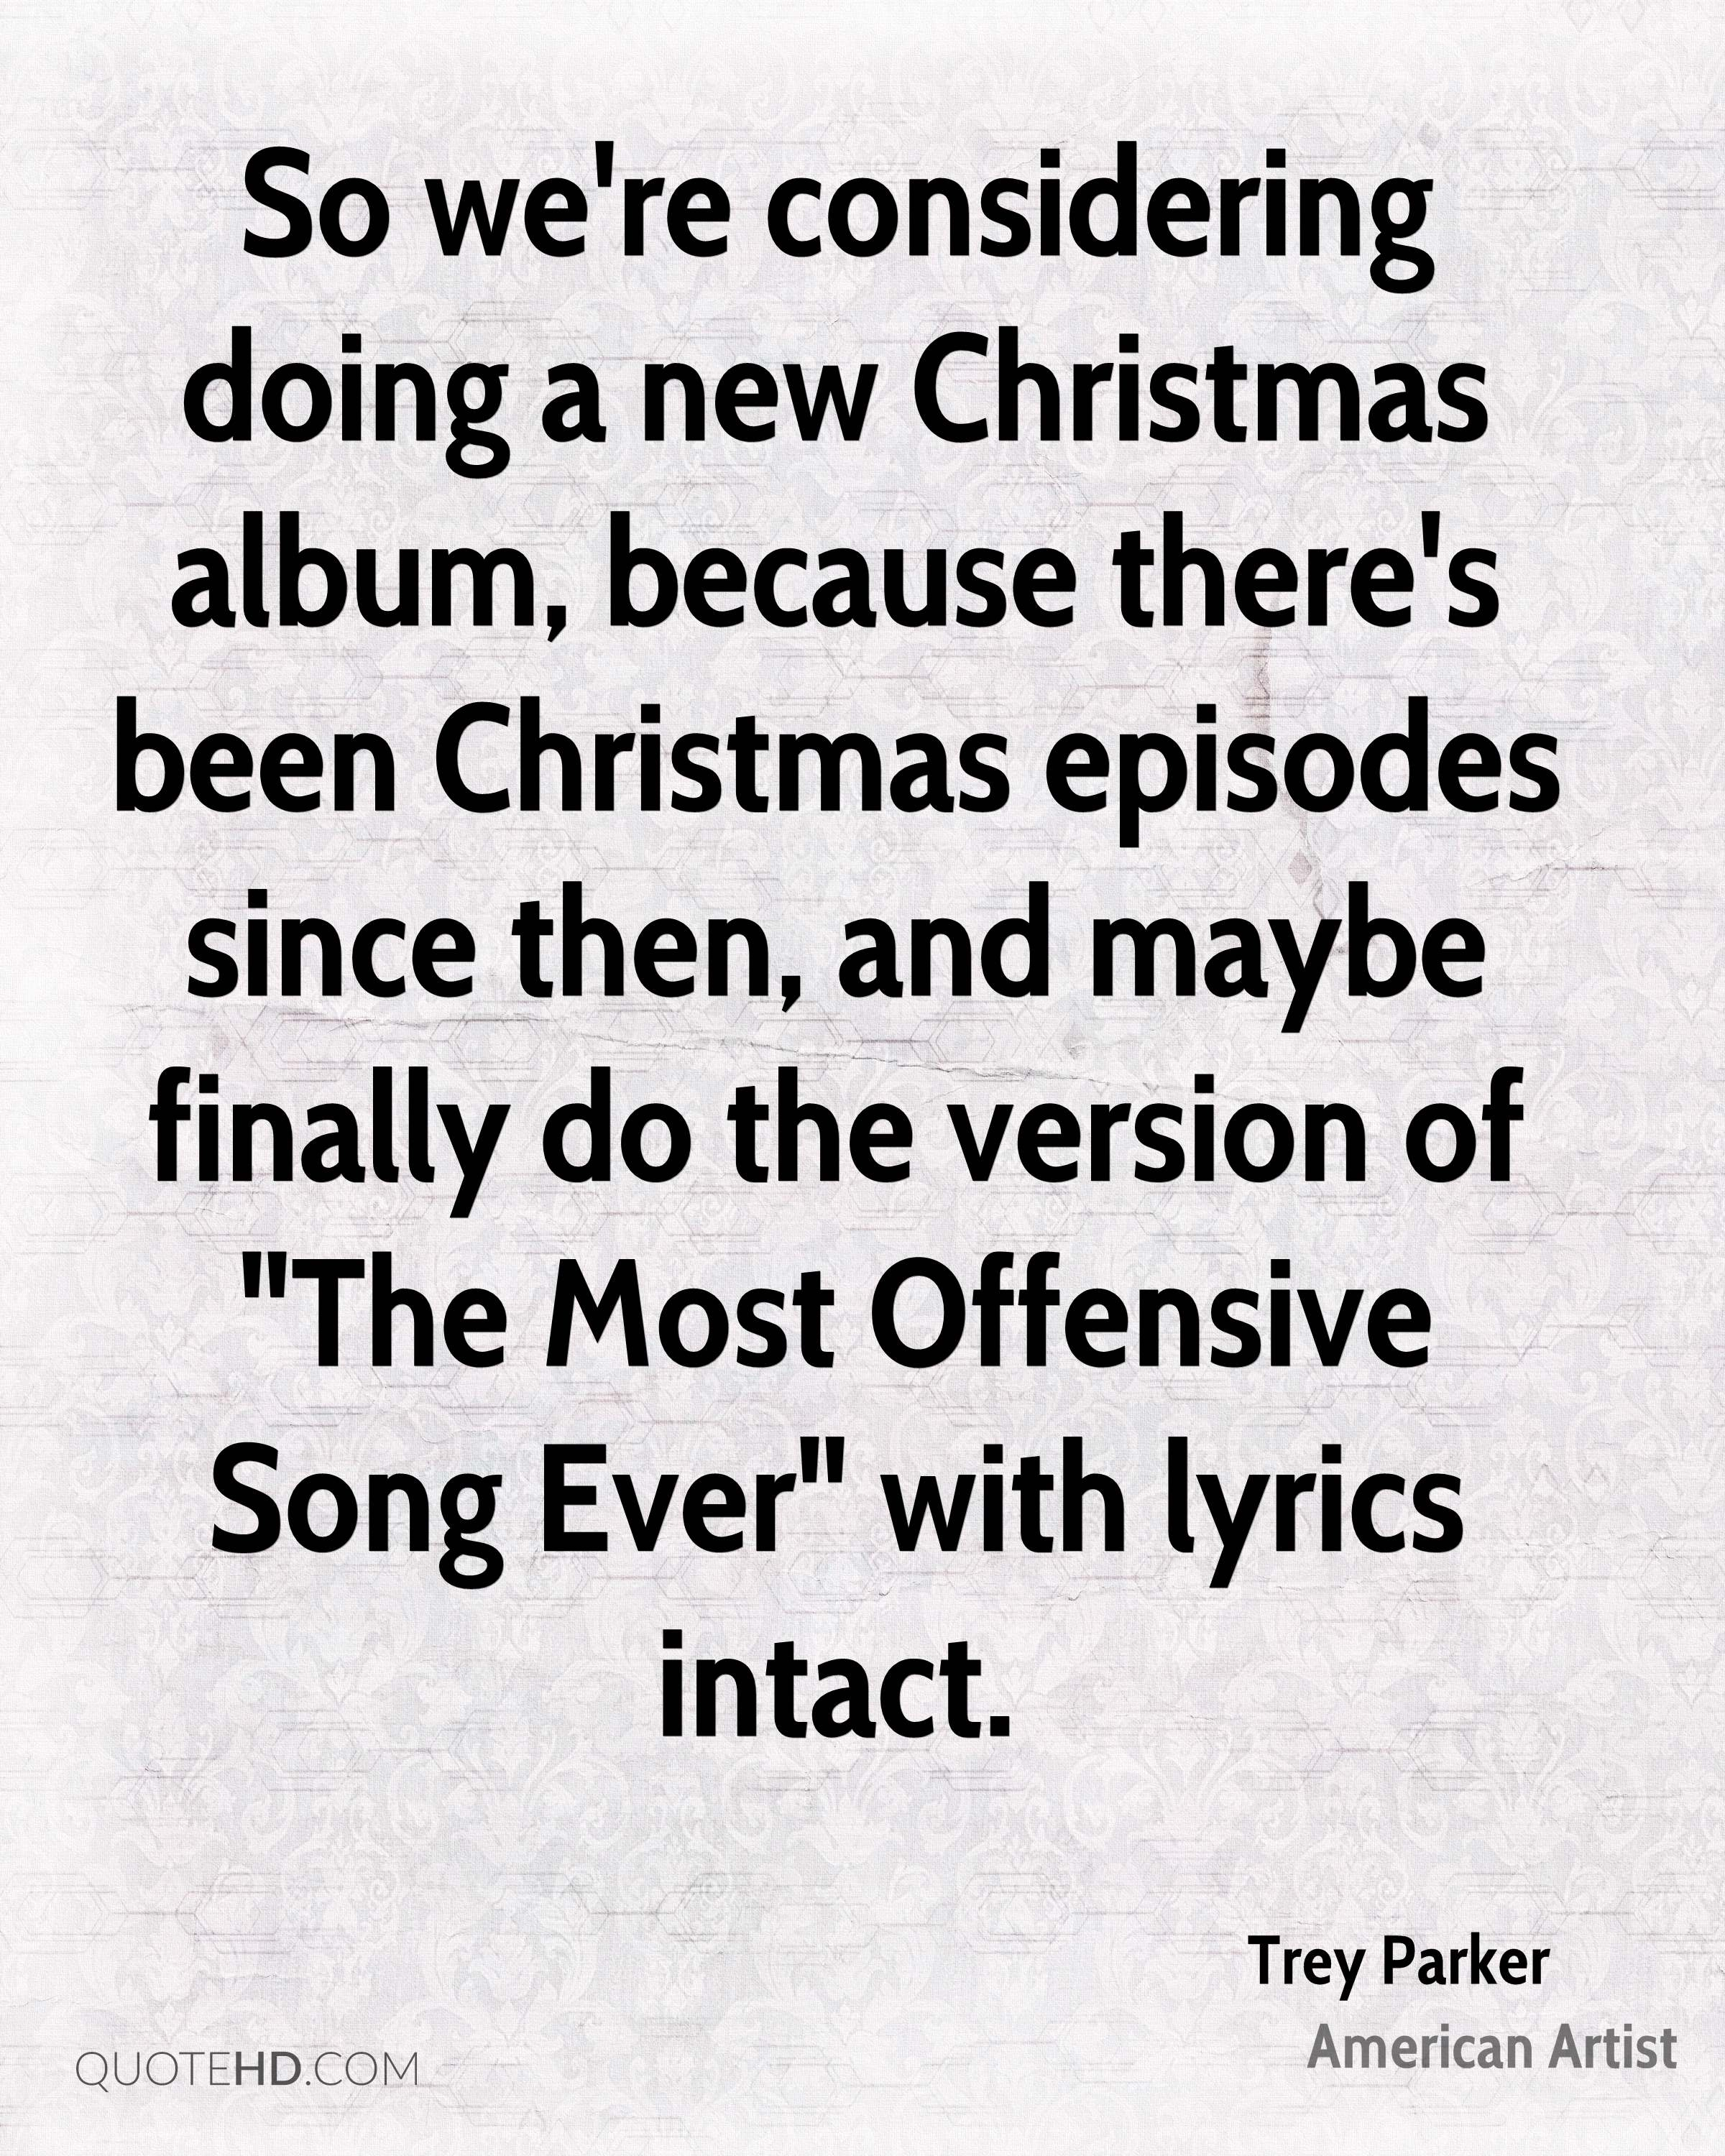 """So we're considering doing a new Christmas album, because there's been Christmas episodes since then, and maybe finally do the version of """"The Most Offensive Song Ever"""" with lyrics intact."""